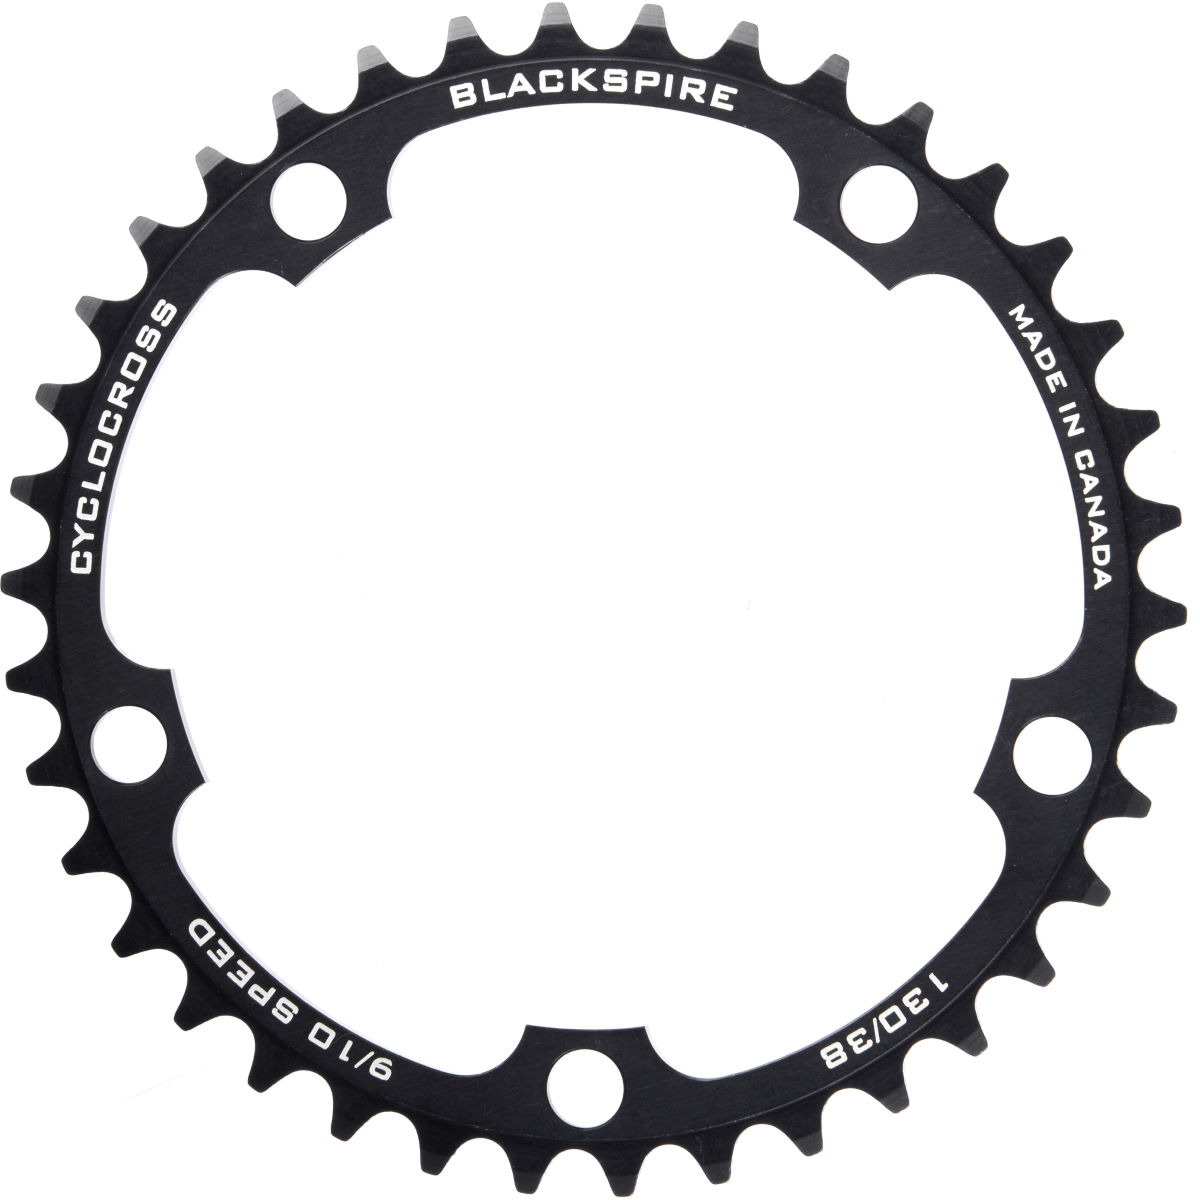 Blackspire Blackspire Super Pro Cyclocross Chainrings   Chain Rings